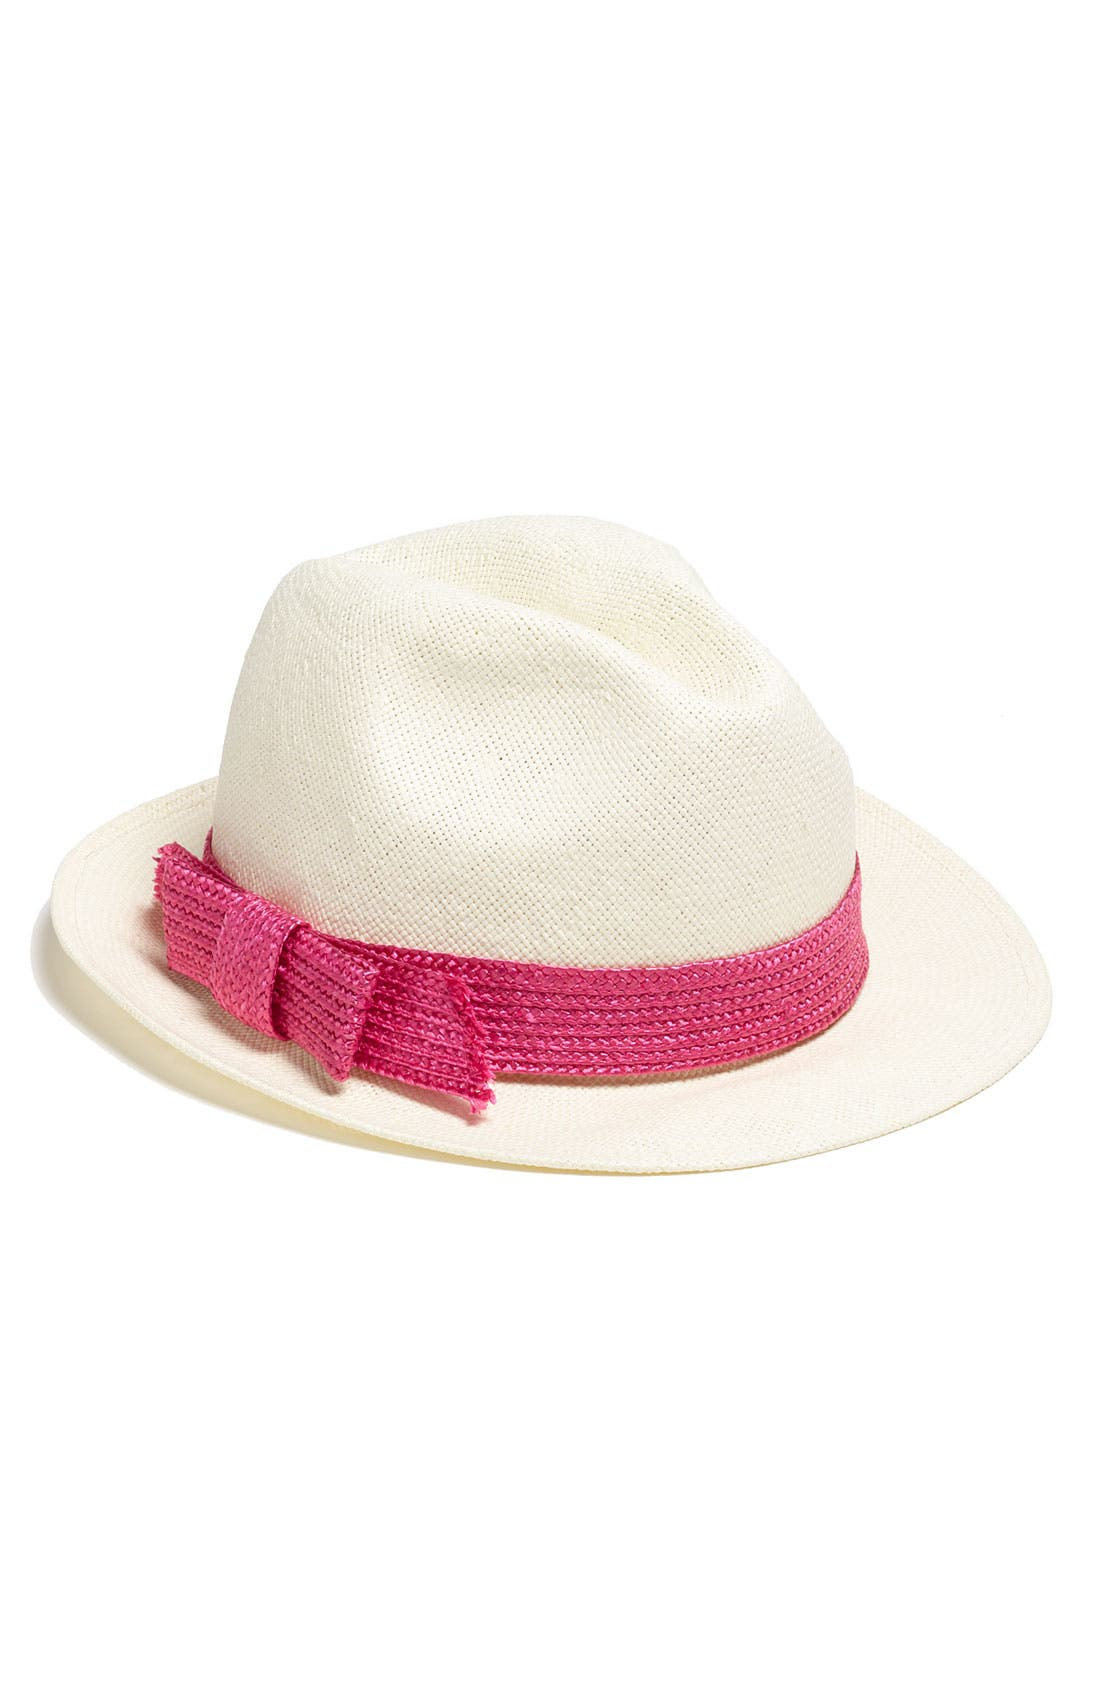 Alternate Image 1 Selected - kate spade new york straw fedora